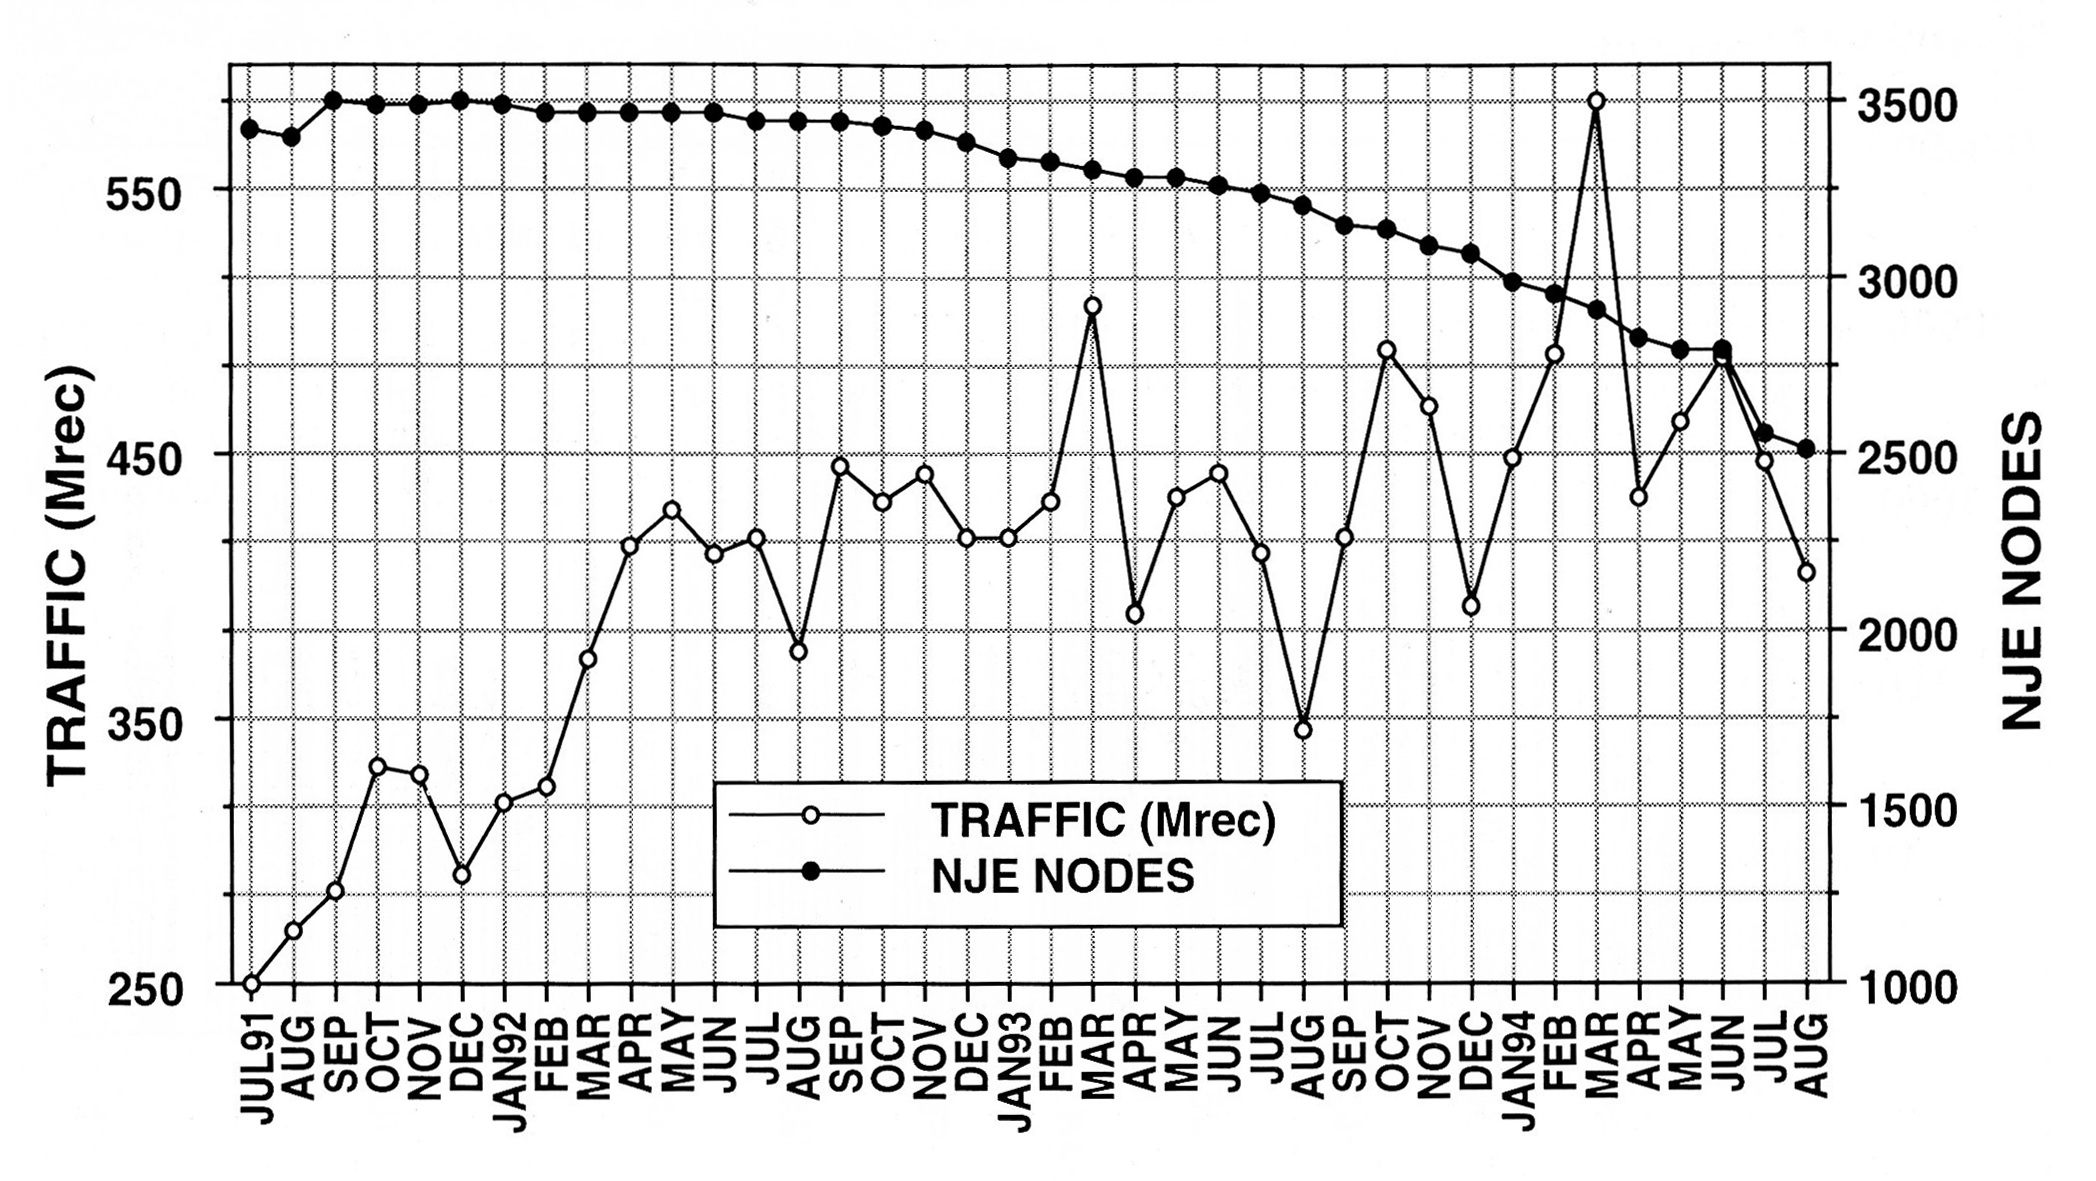 The Traffic volume compared to the number of NJE nodes between July 1991 and August 1994. (one record could contain up to 80 bytes)